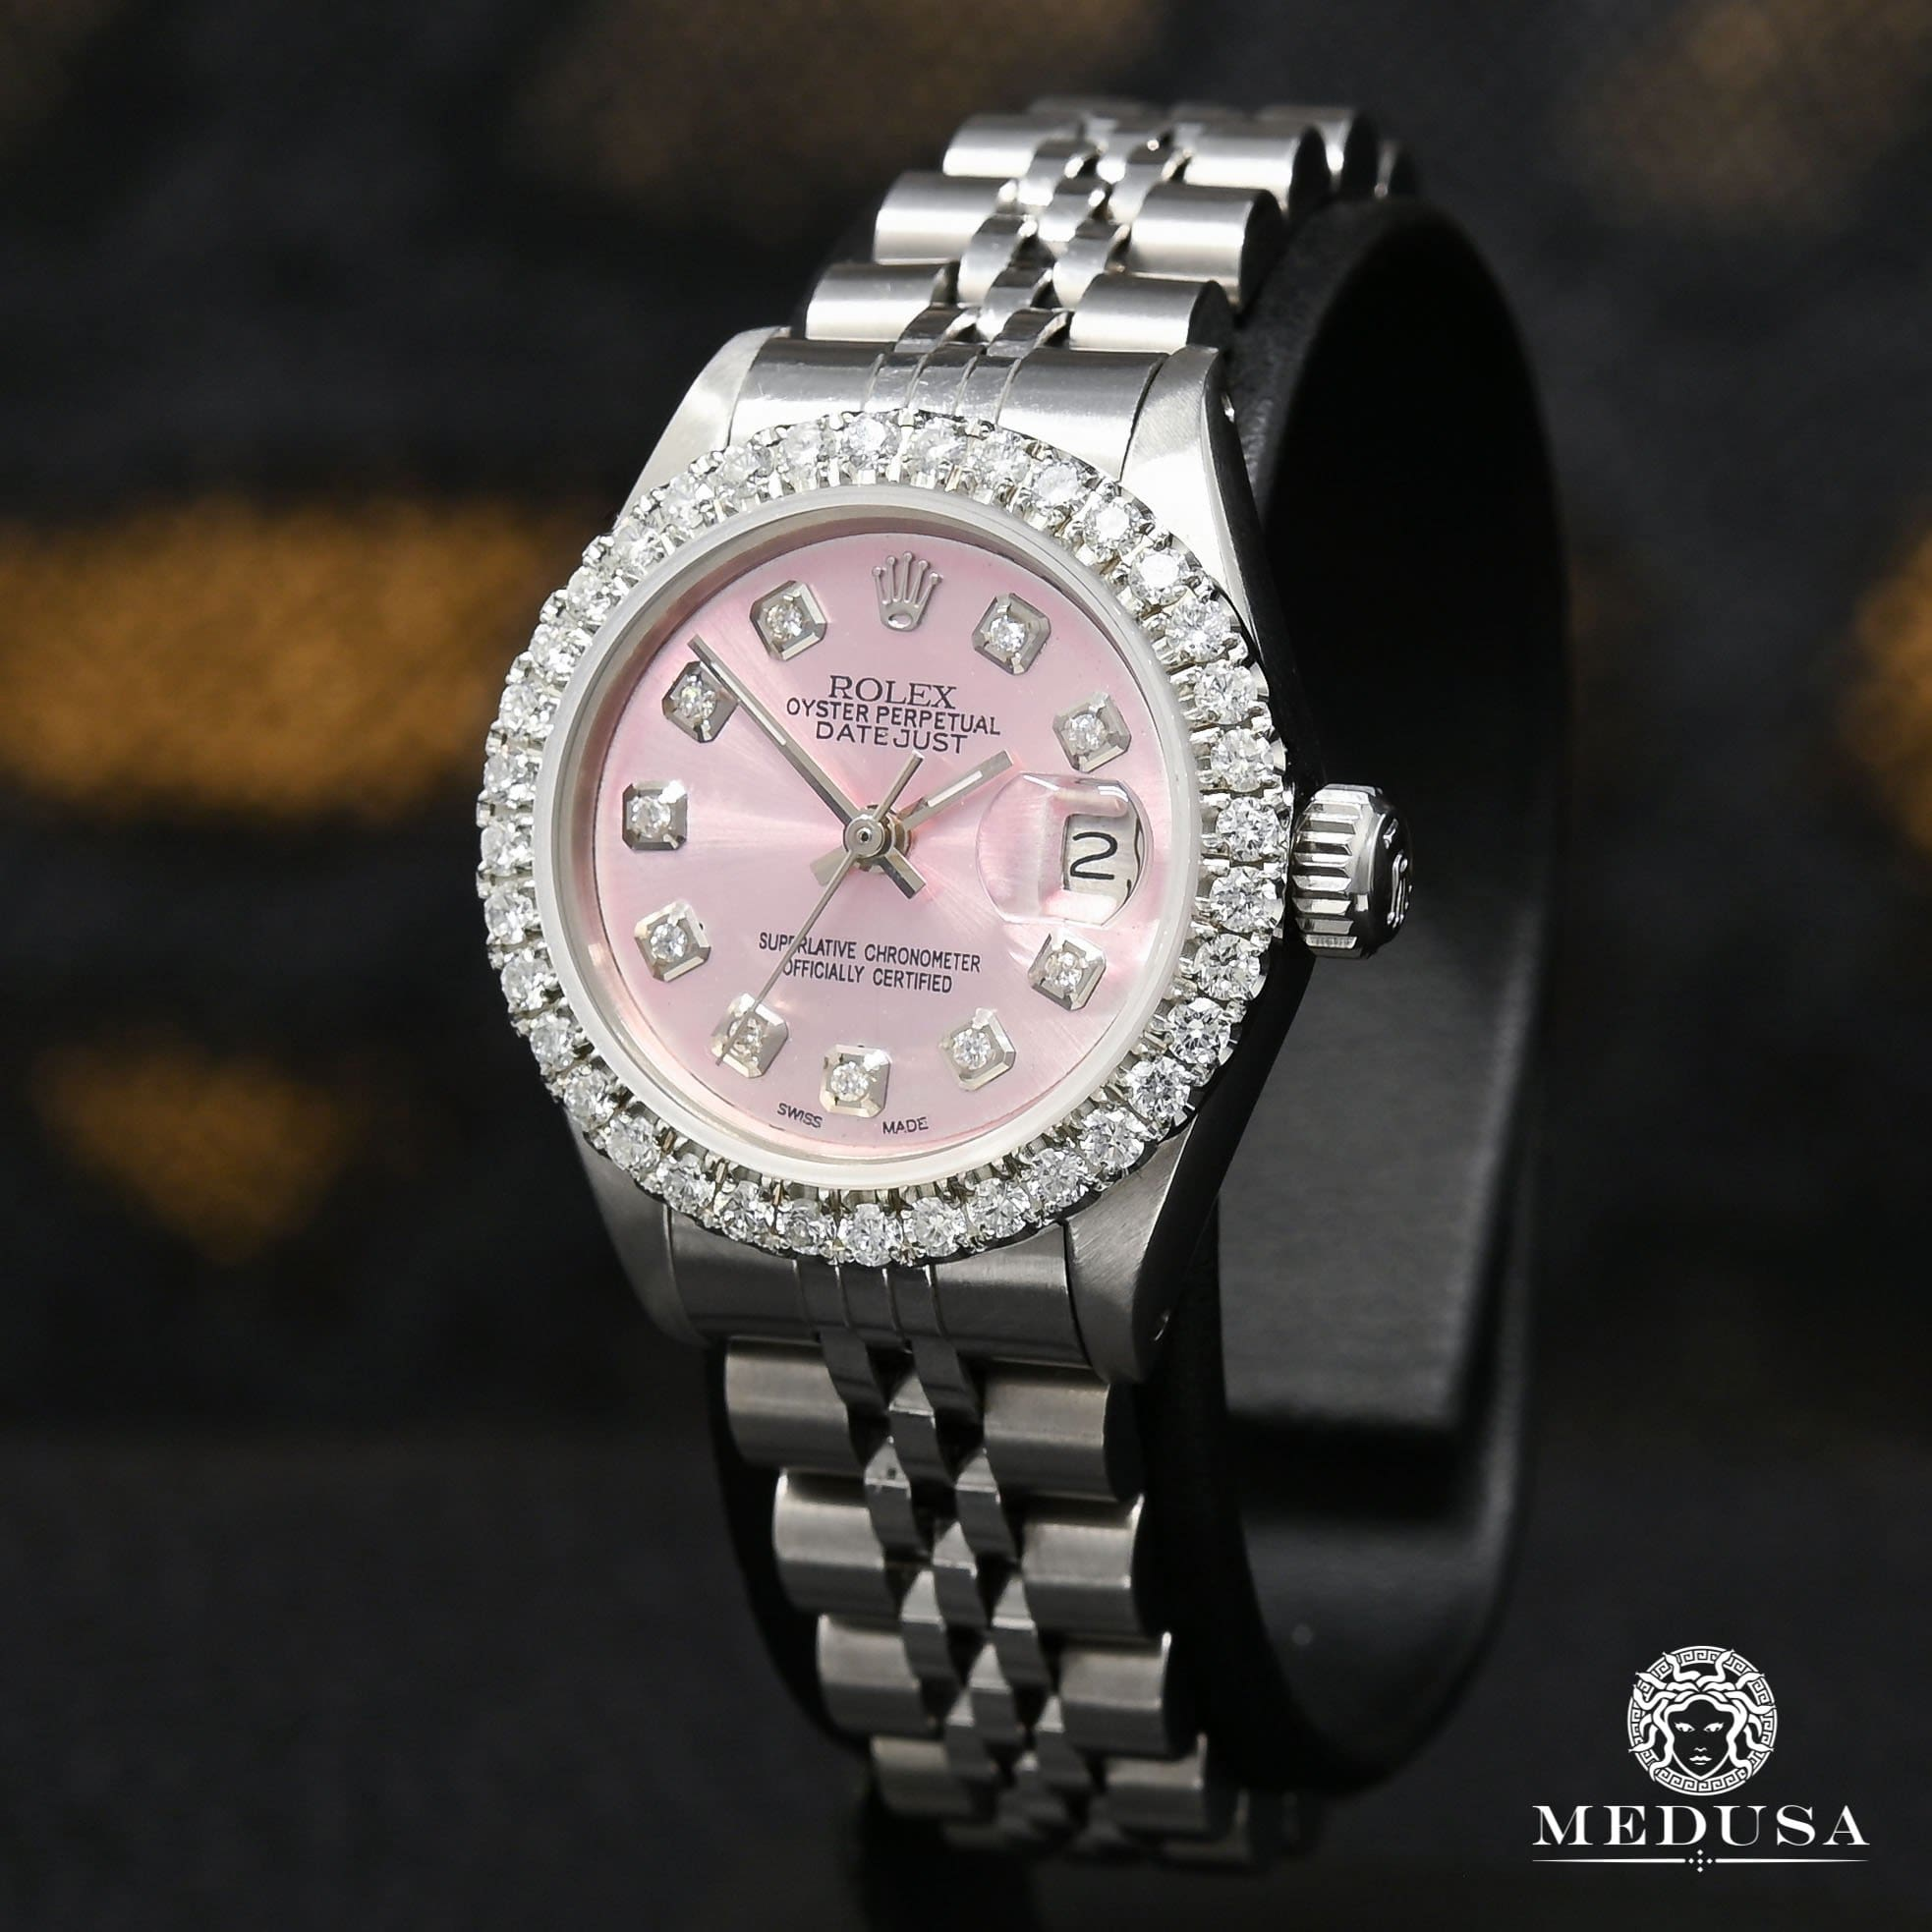 Rolex Datejust 26mm - Pink Stainless